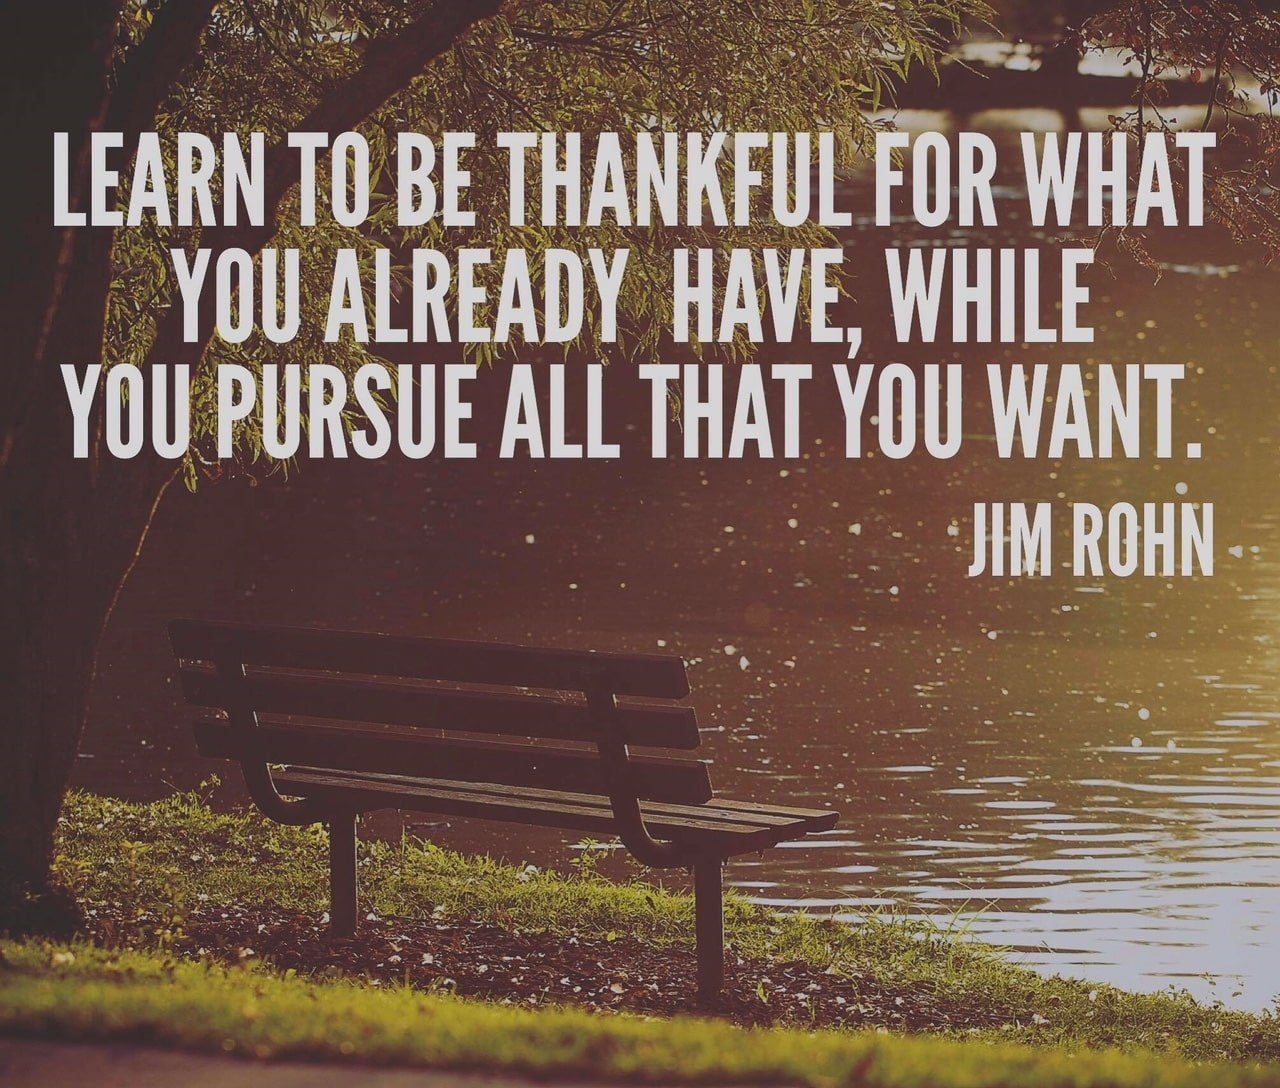 20 Highly Motivational Jim Rohn Image Quotes